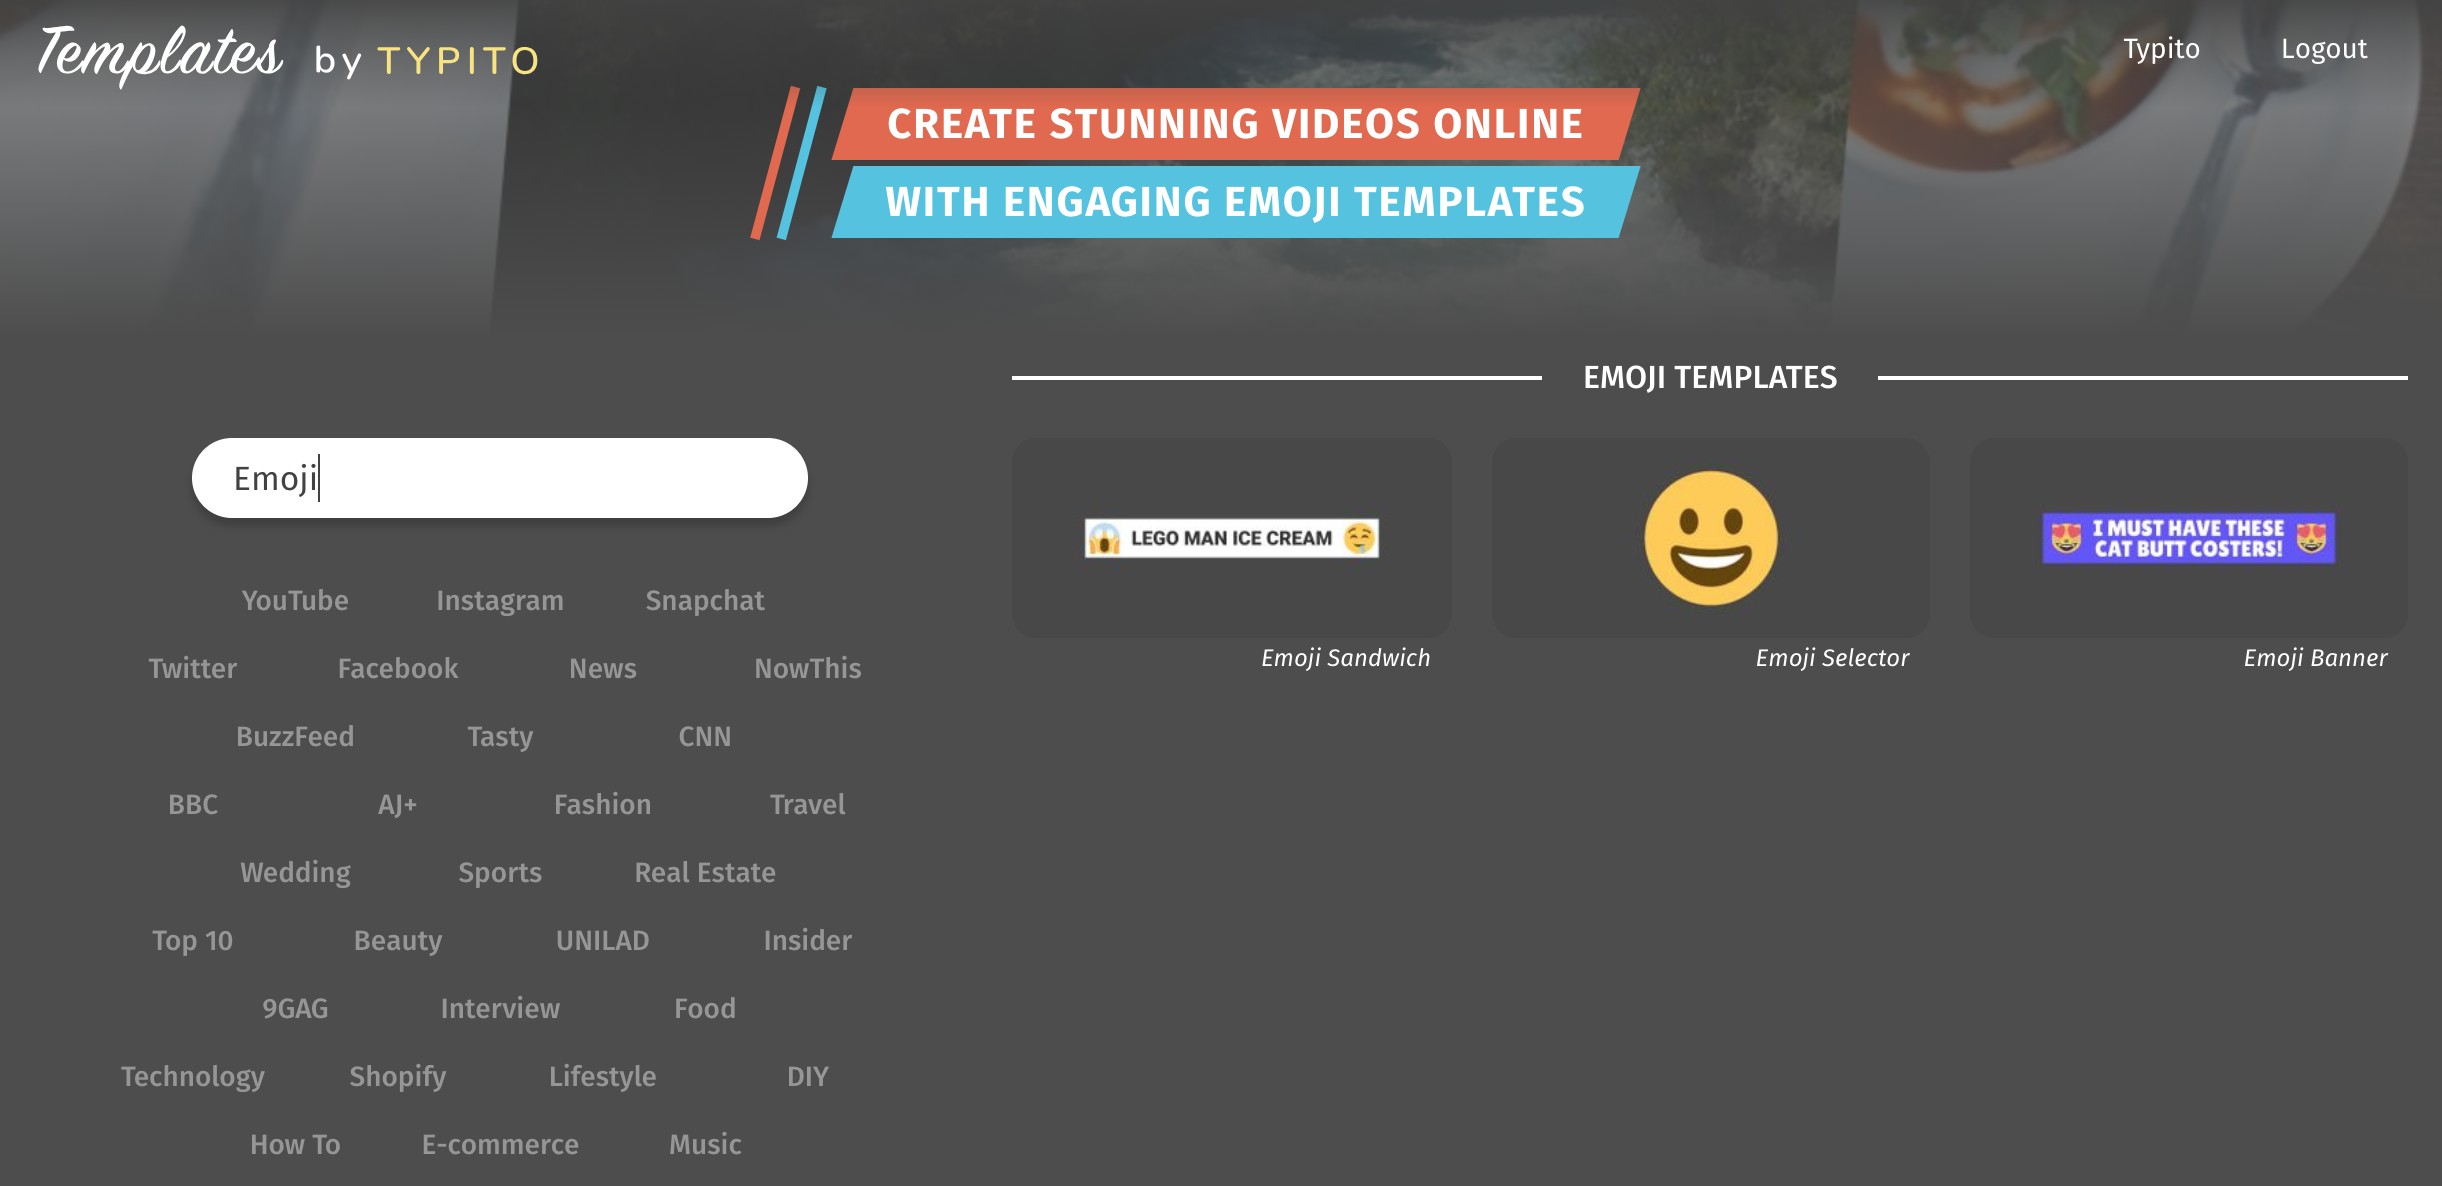 Why and How to add Emojis on Videos - 3 Step Guide - Typito